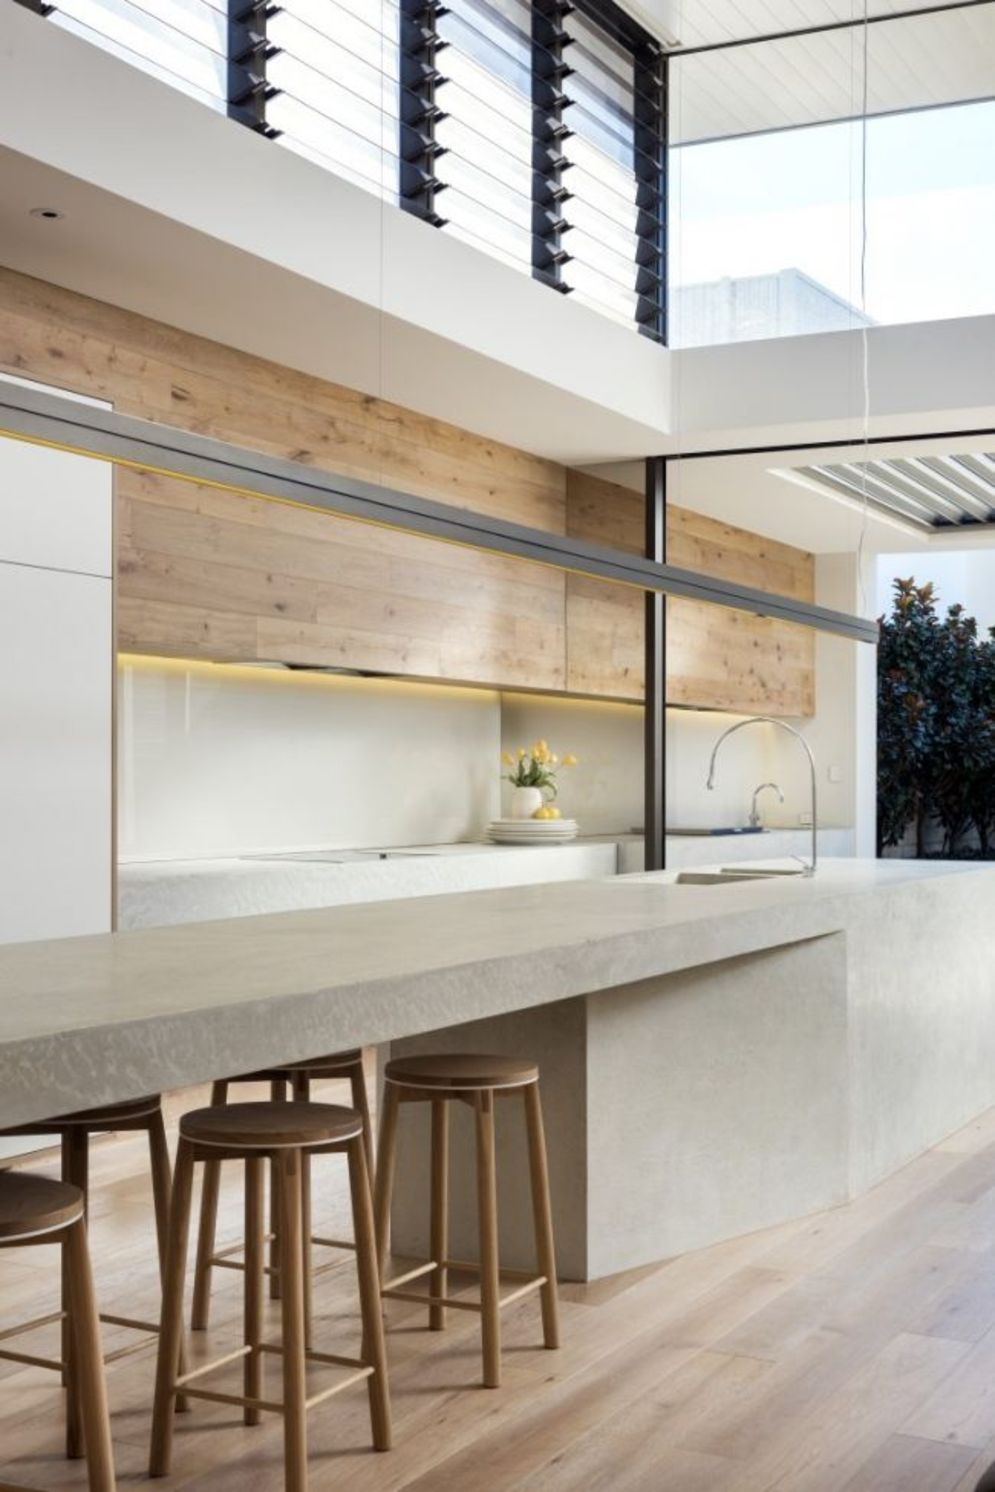 Classy kitchen styles in bold display maximizing concrete benchtop designs Image 12